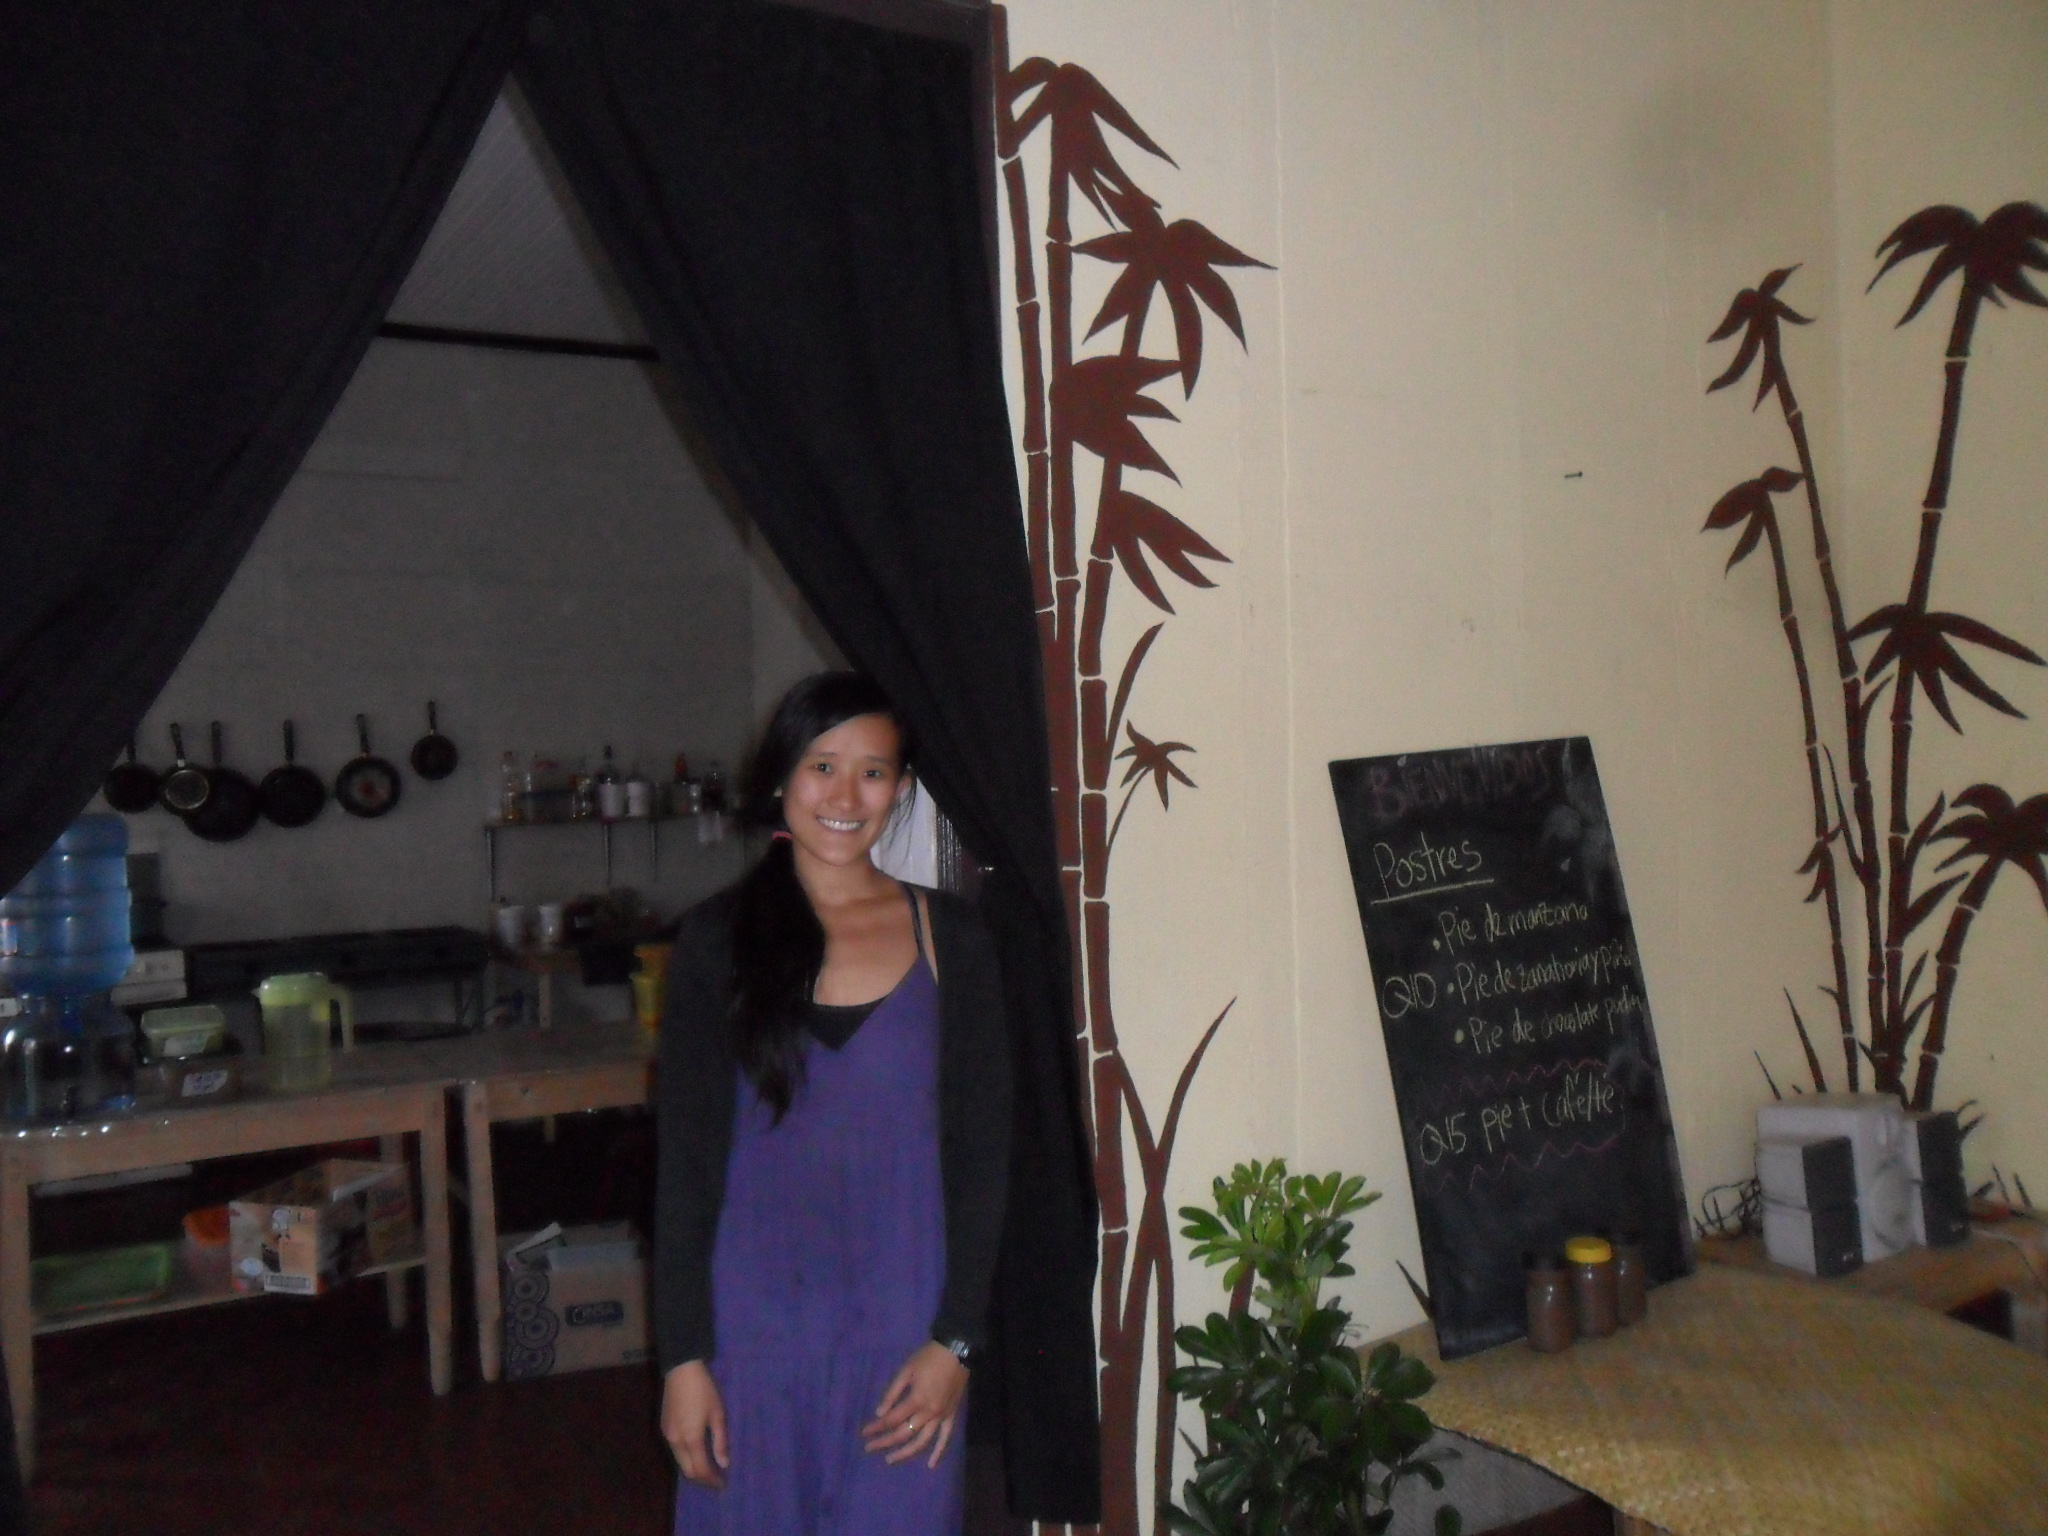 Denise with her South East Asian restaurant which she opened up a year ago